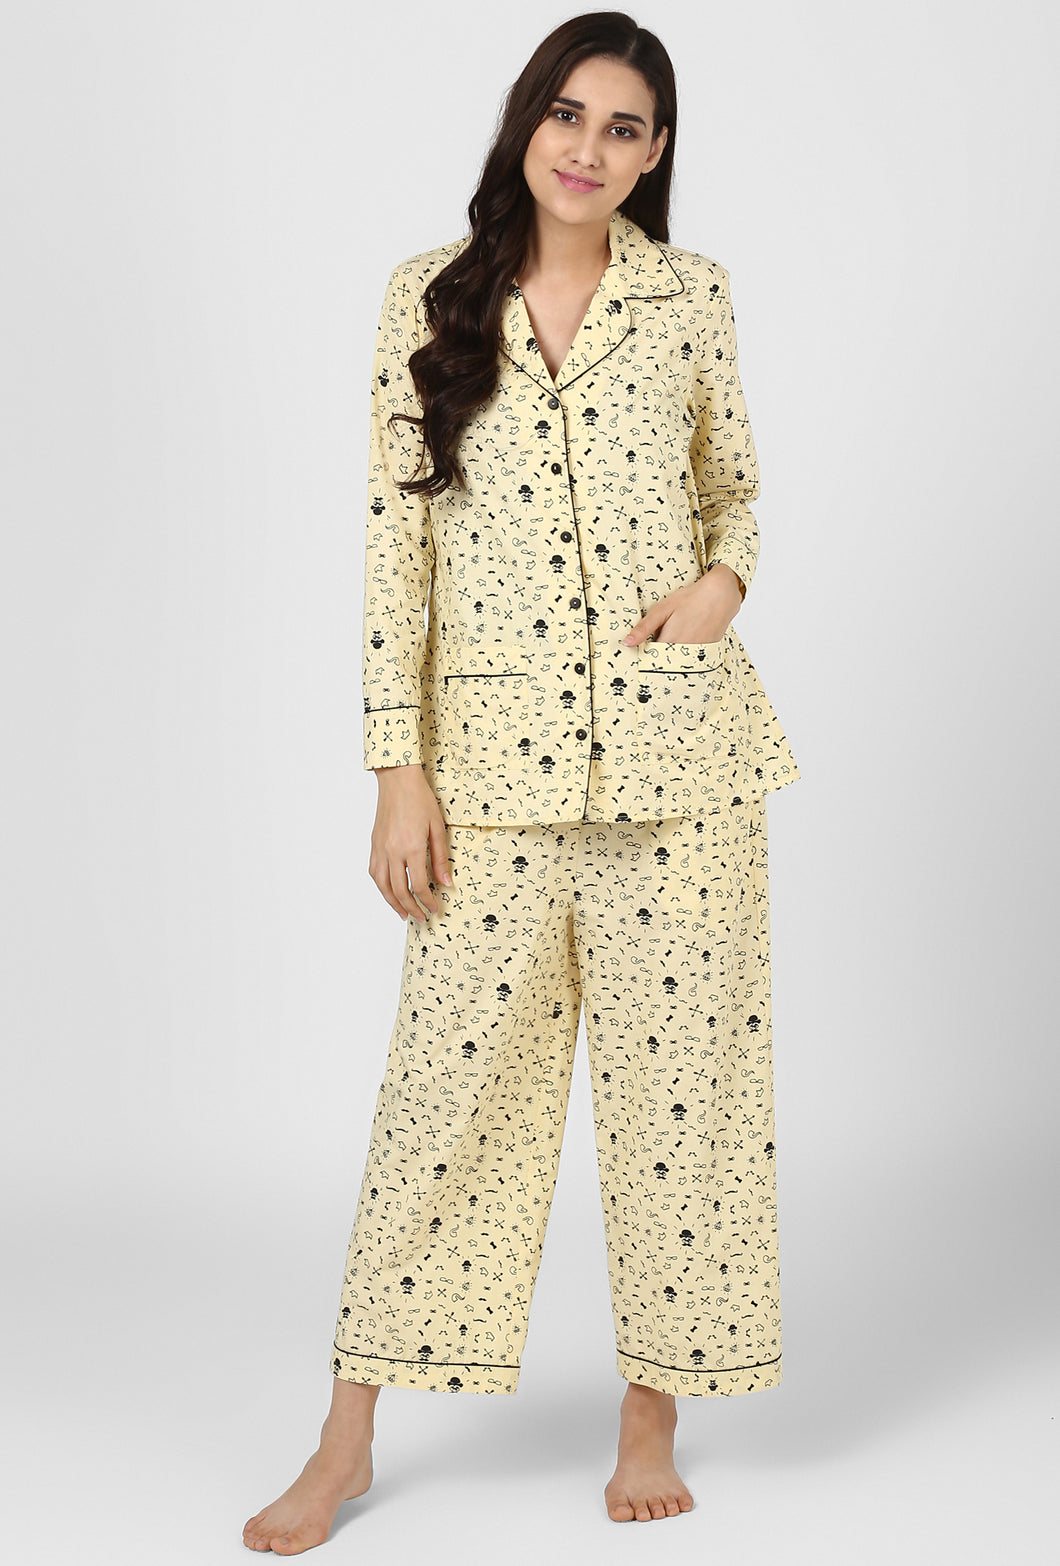 Yellow Print Midnight Musings Night Suit